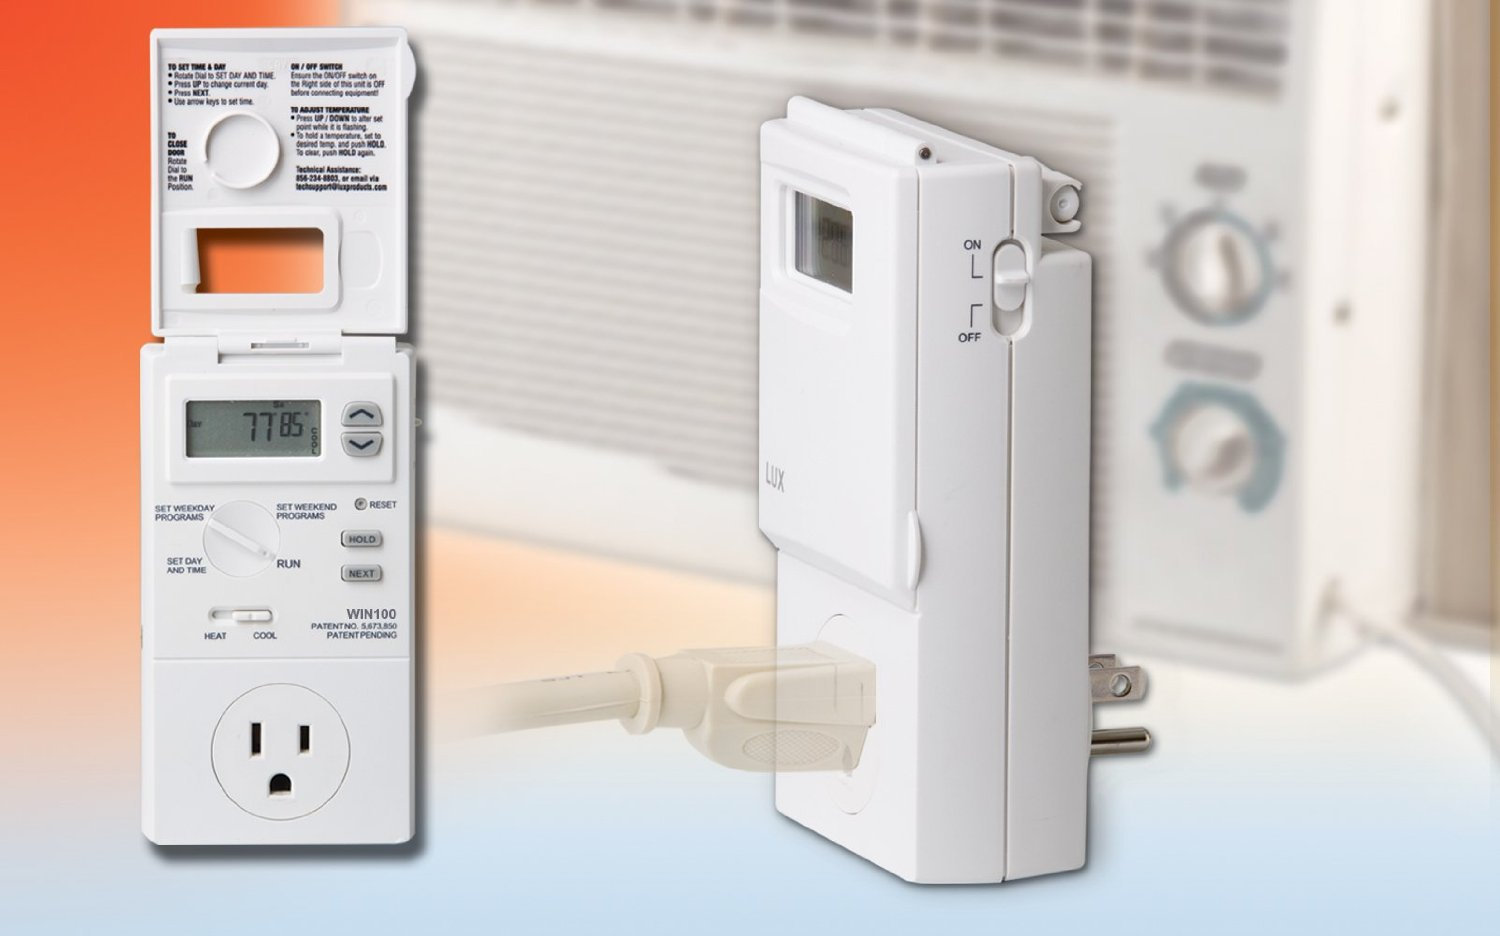 Lux WIN100 Programmable Outlet Thermostat